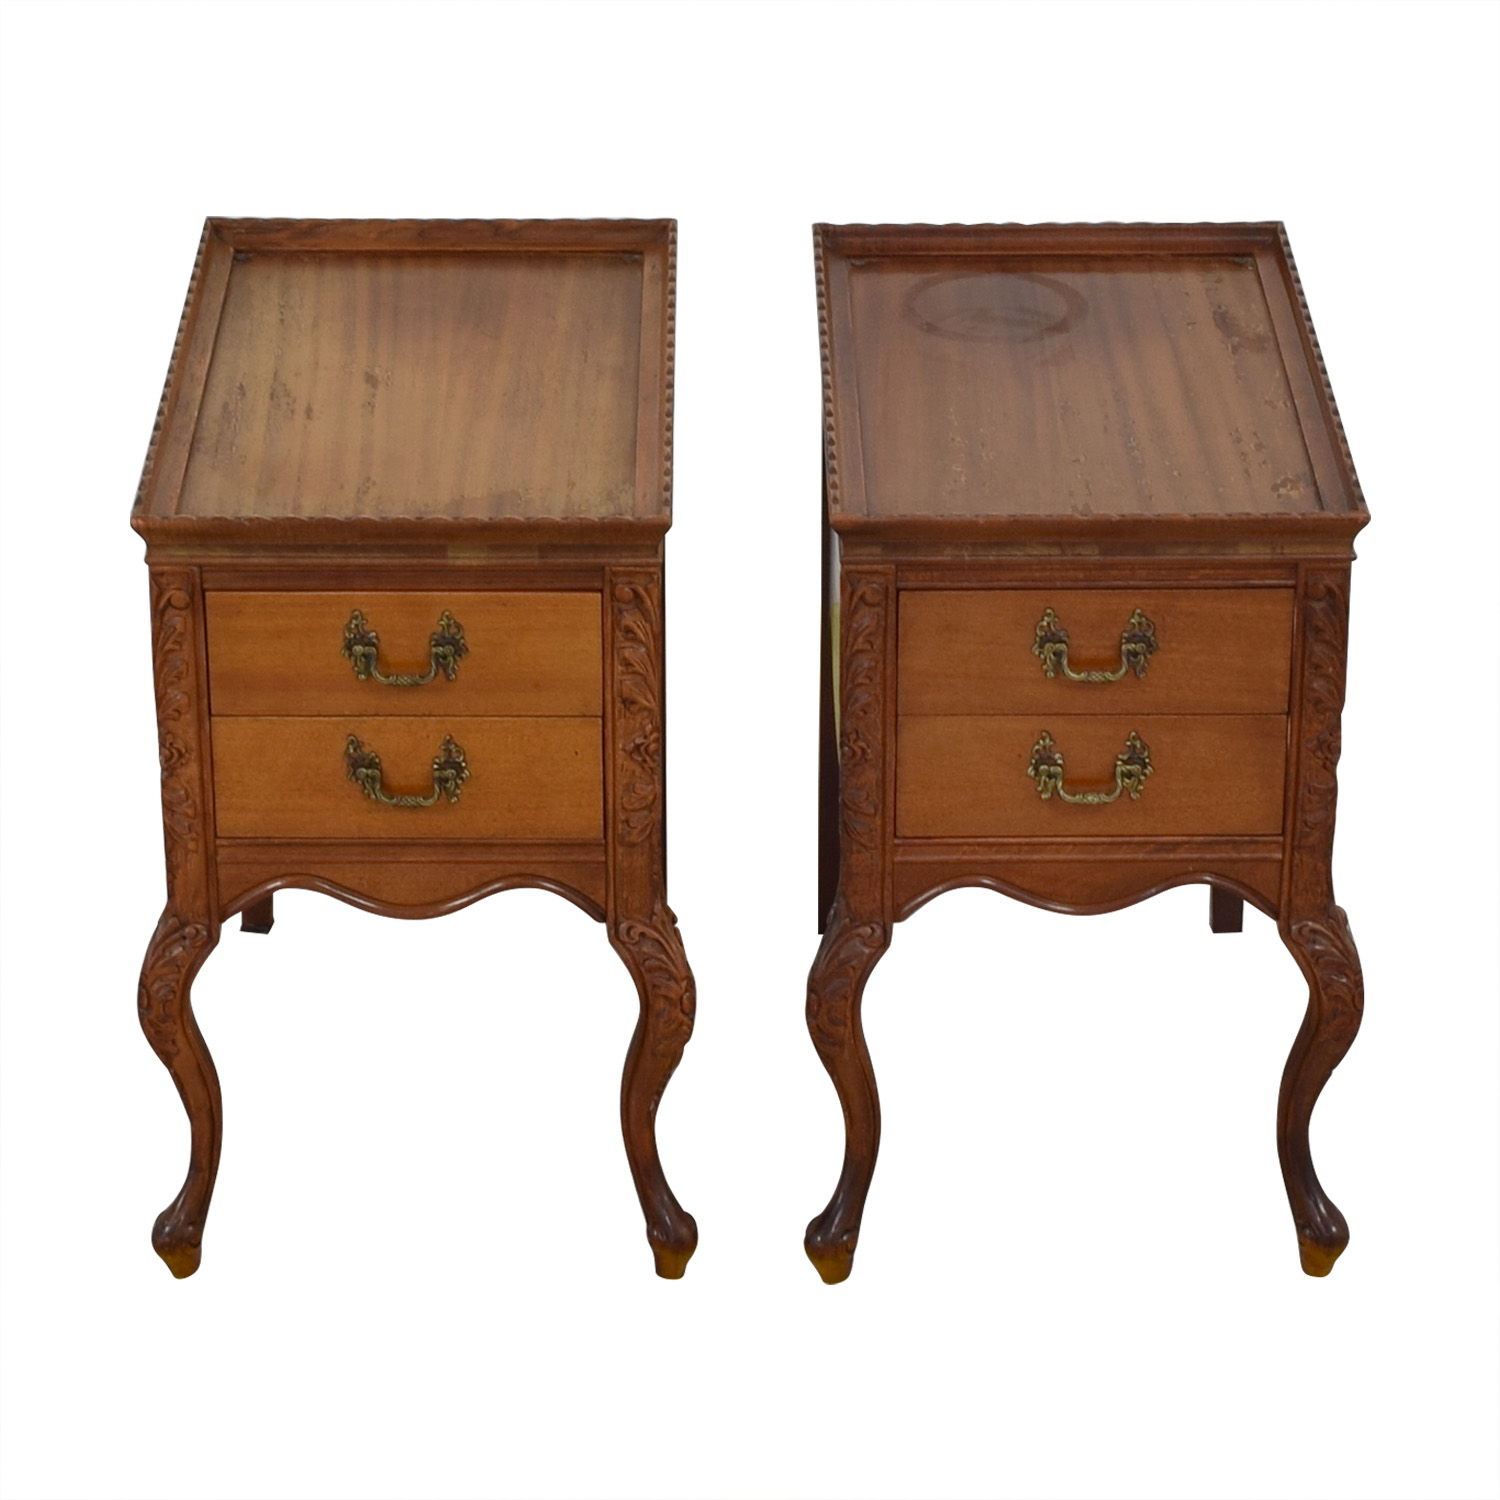 Holland House Antique End Tables / Tables